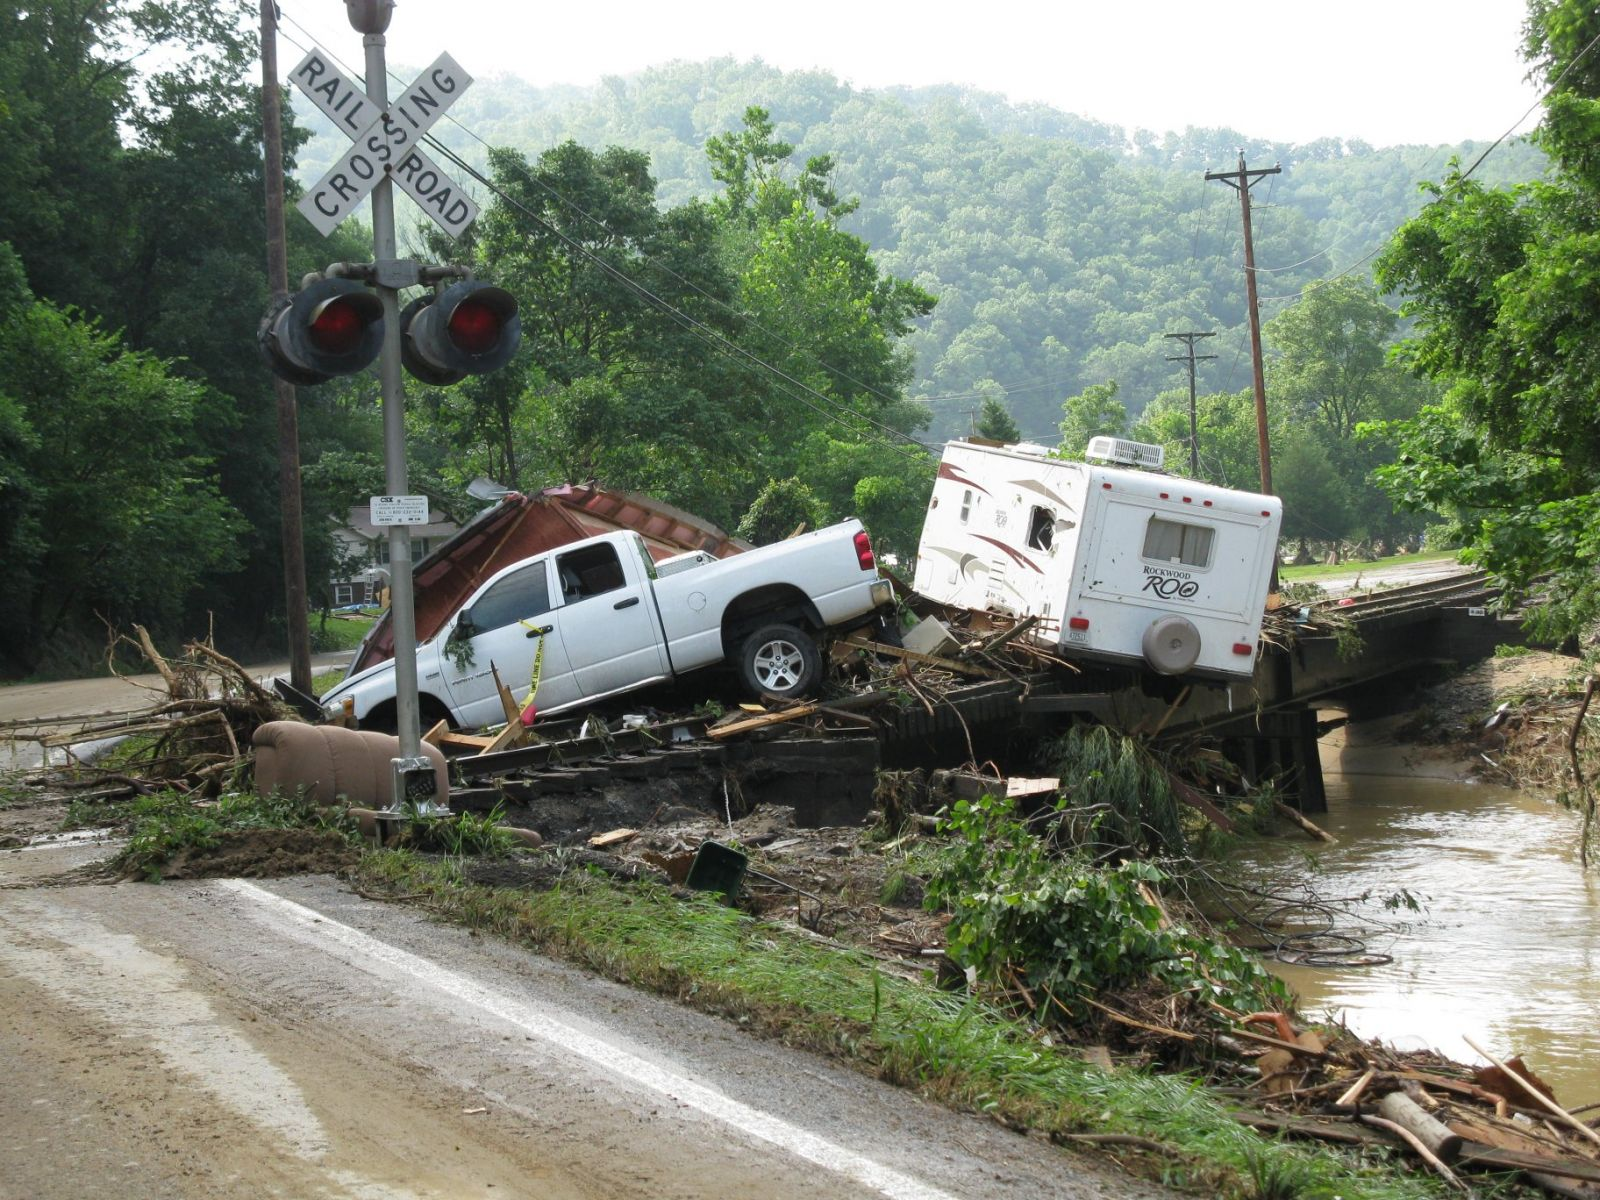 One decade ago, floods devastated two Pike County communities